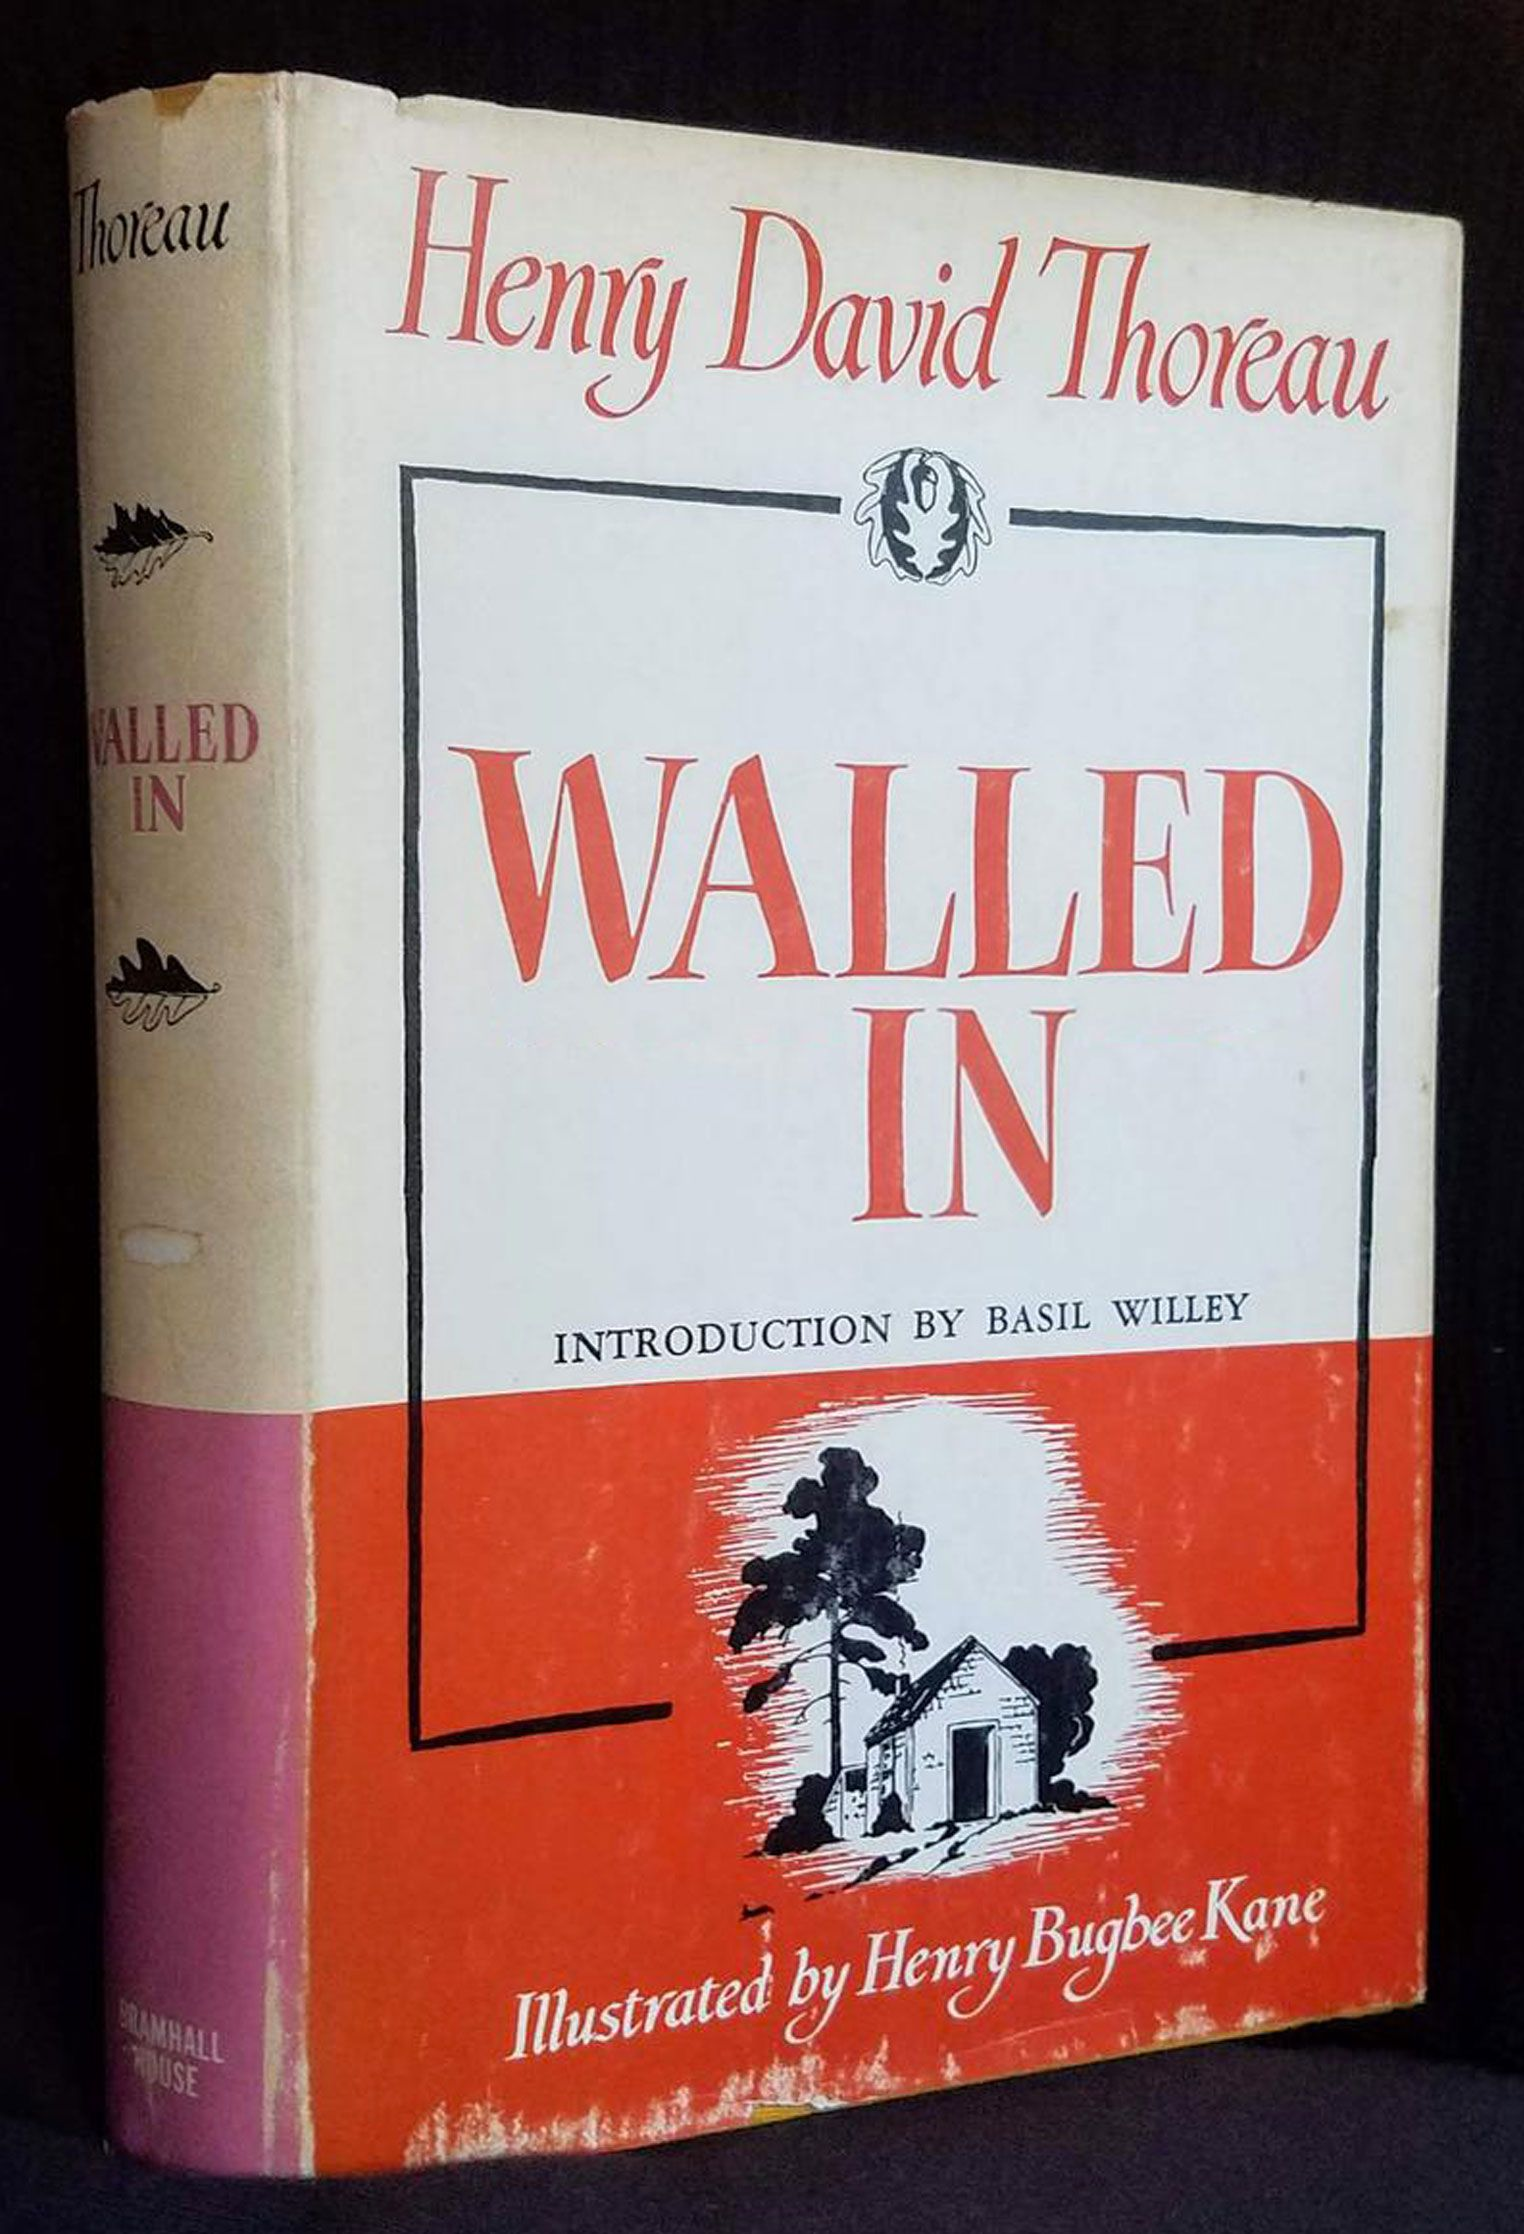 Walled In (Walden, by Henry David Thoreau)